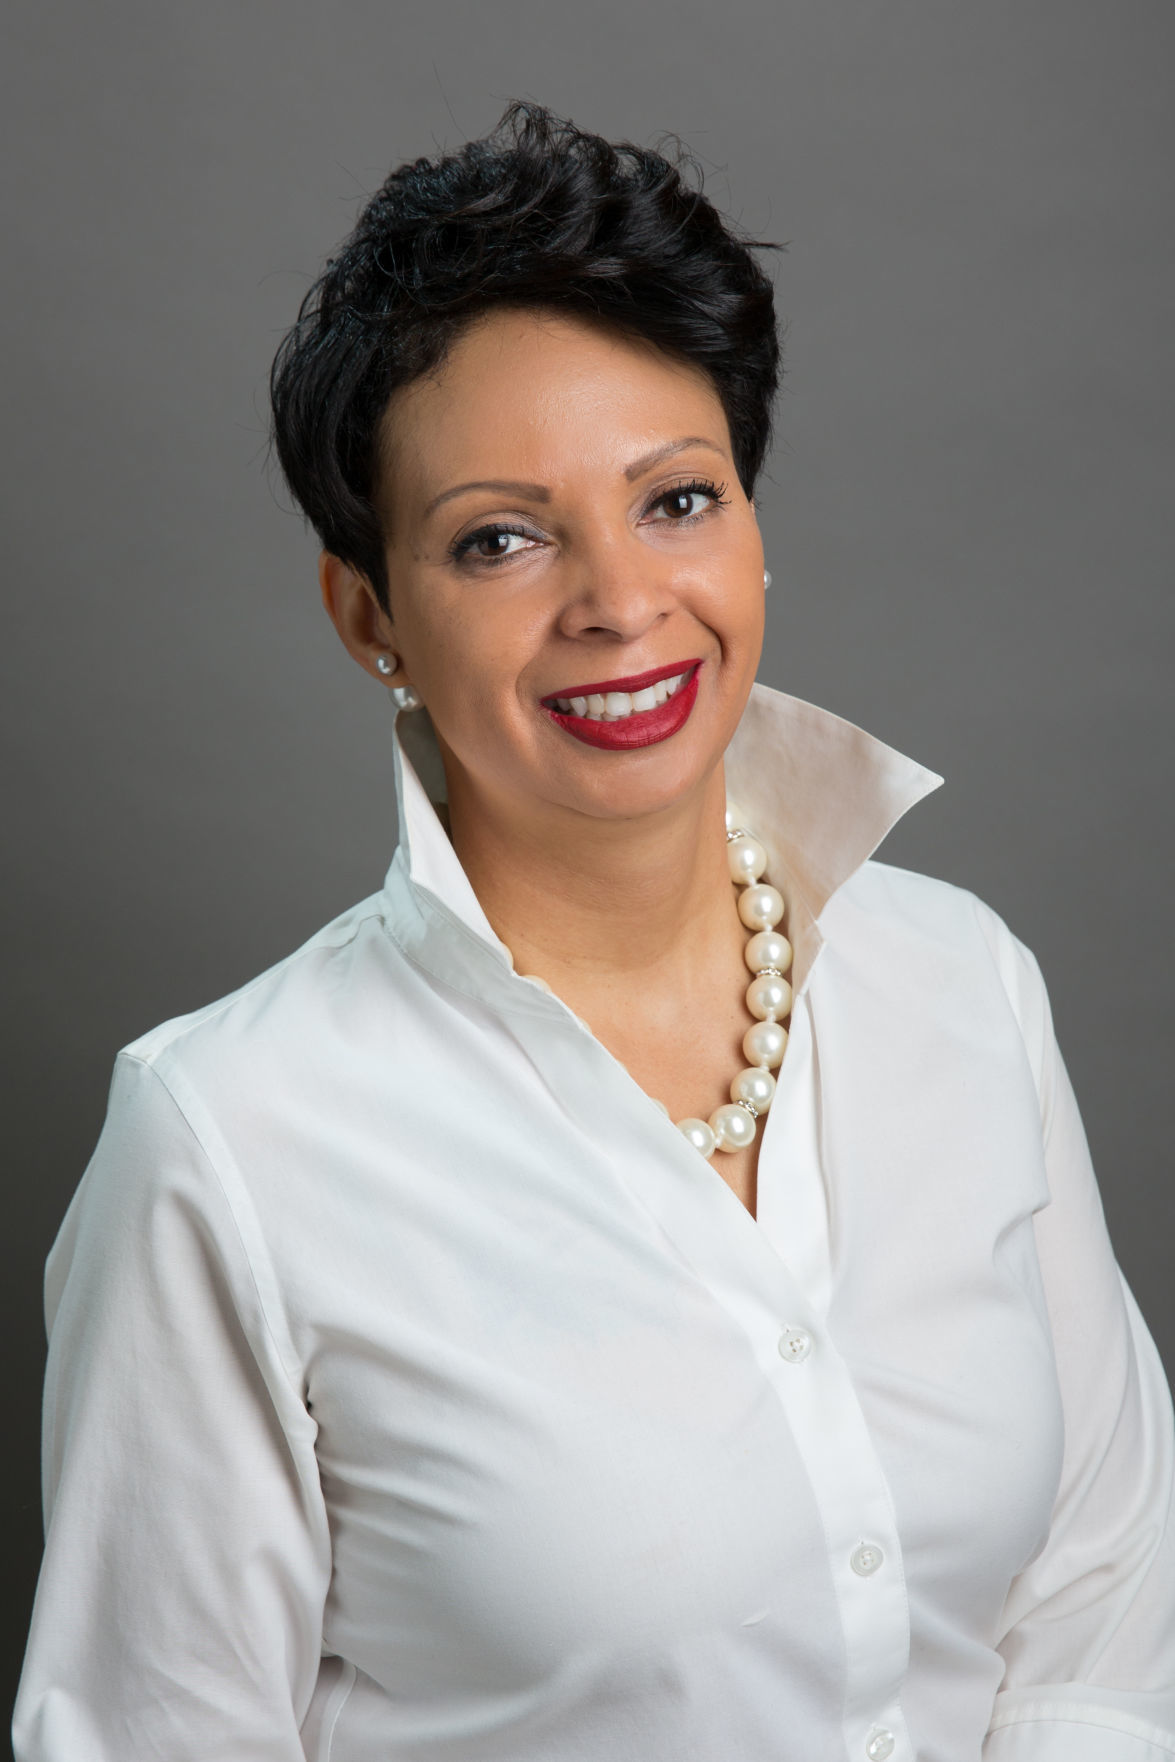 Dr. Marie Peoples, Deputy County Manager